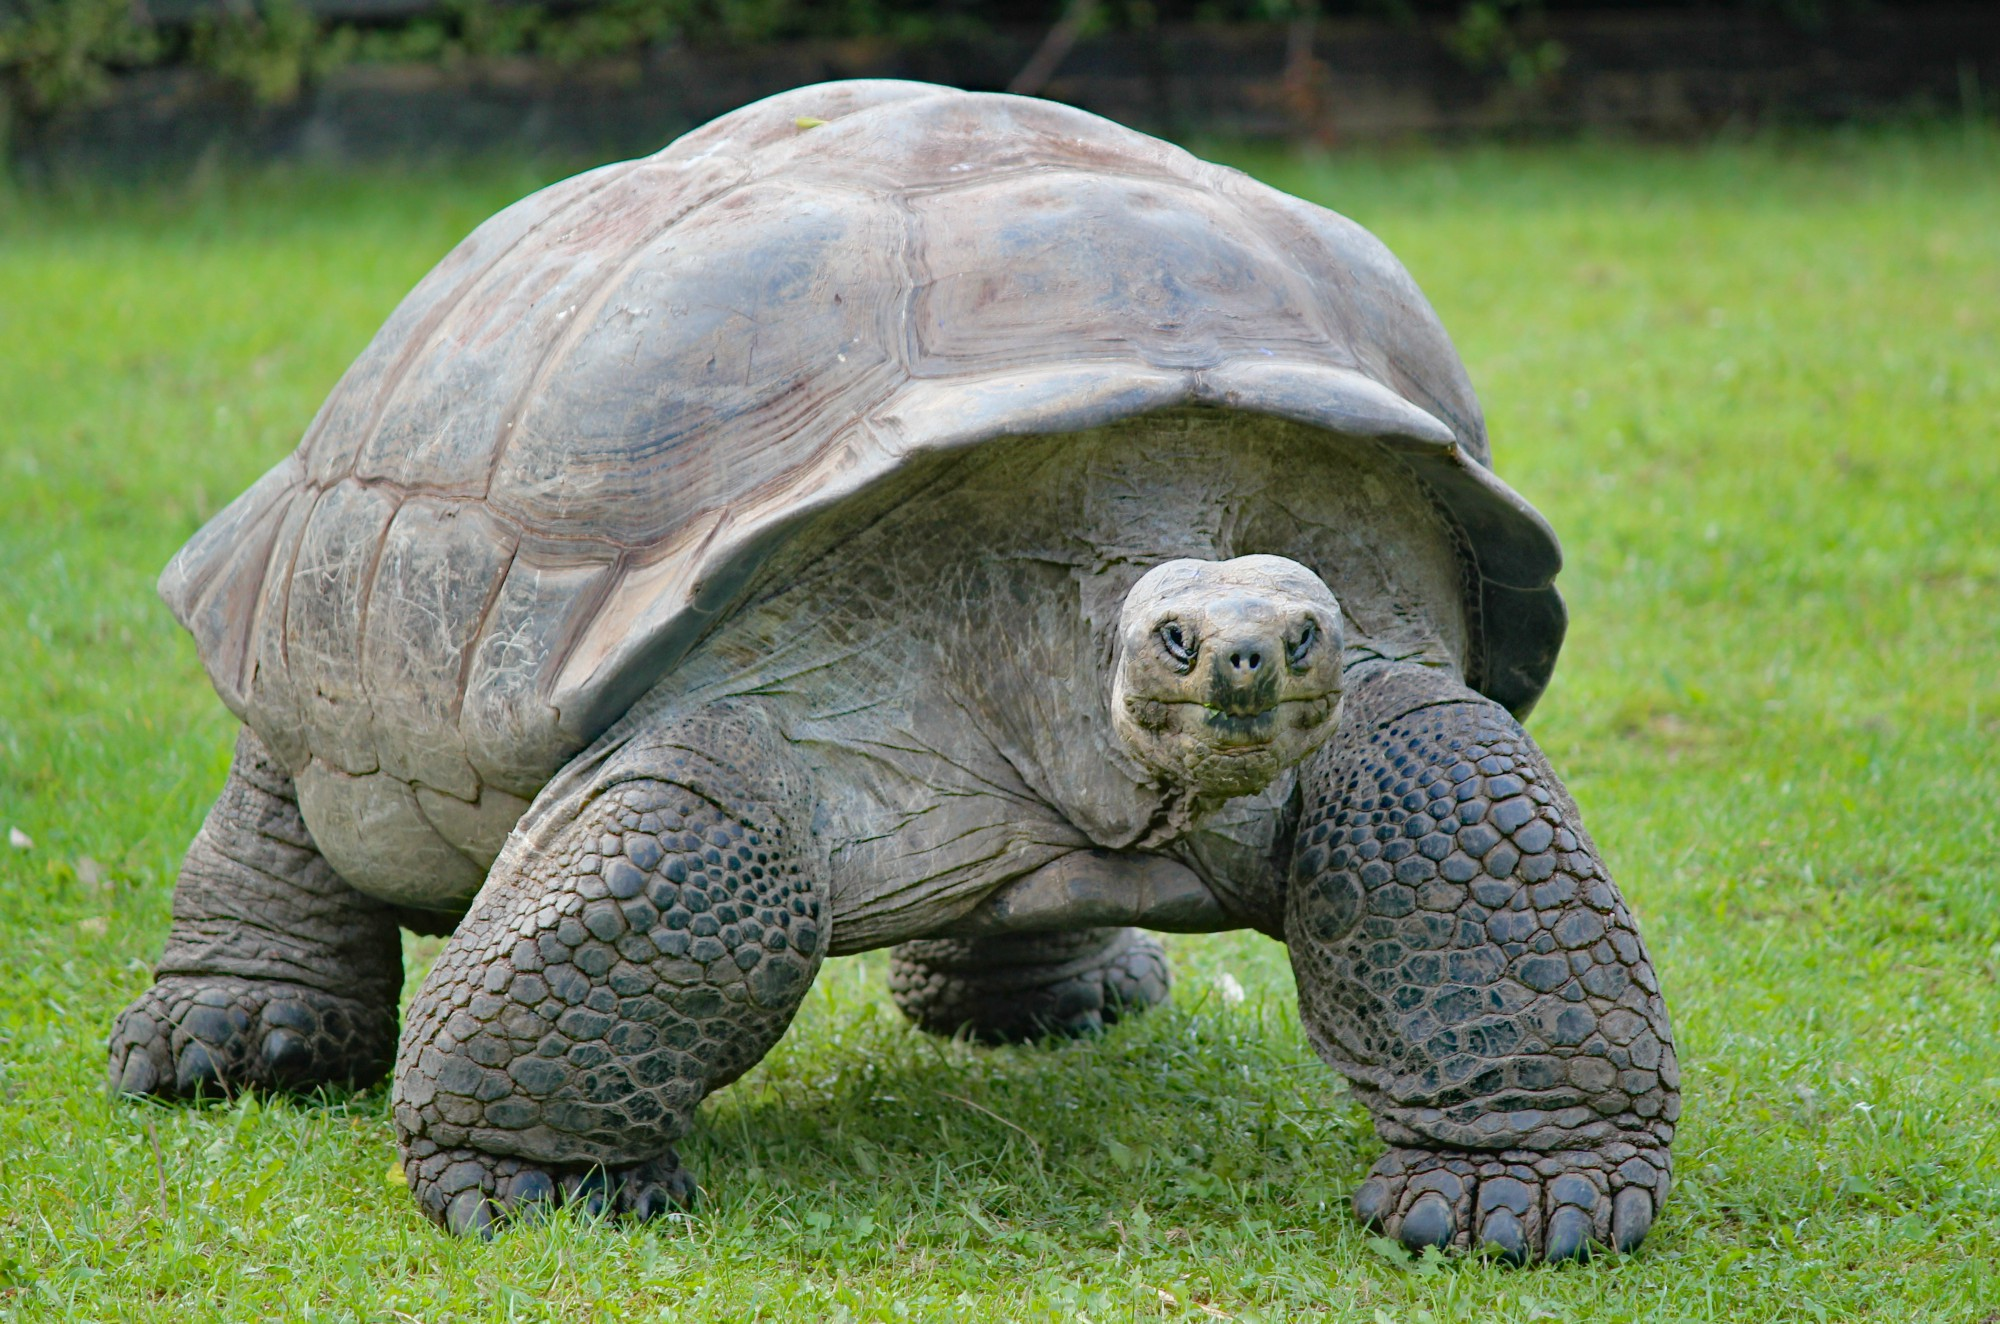 A big tortoise ambles toward the screen, possibly hoping you have a banana, but certainly very determined to expand Medicaid.